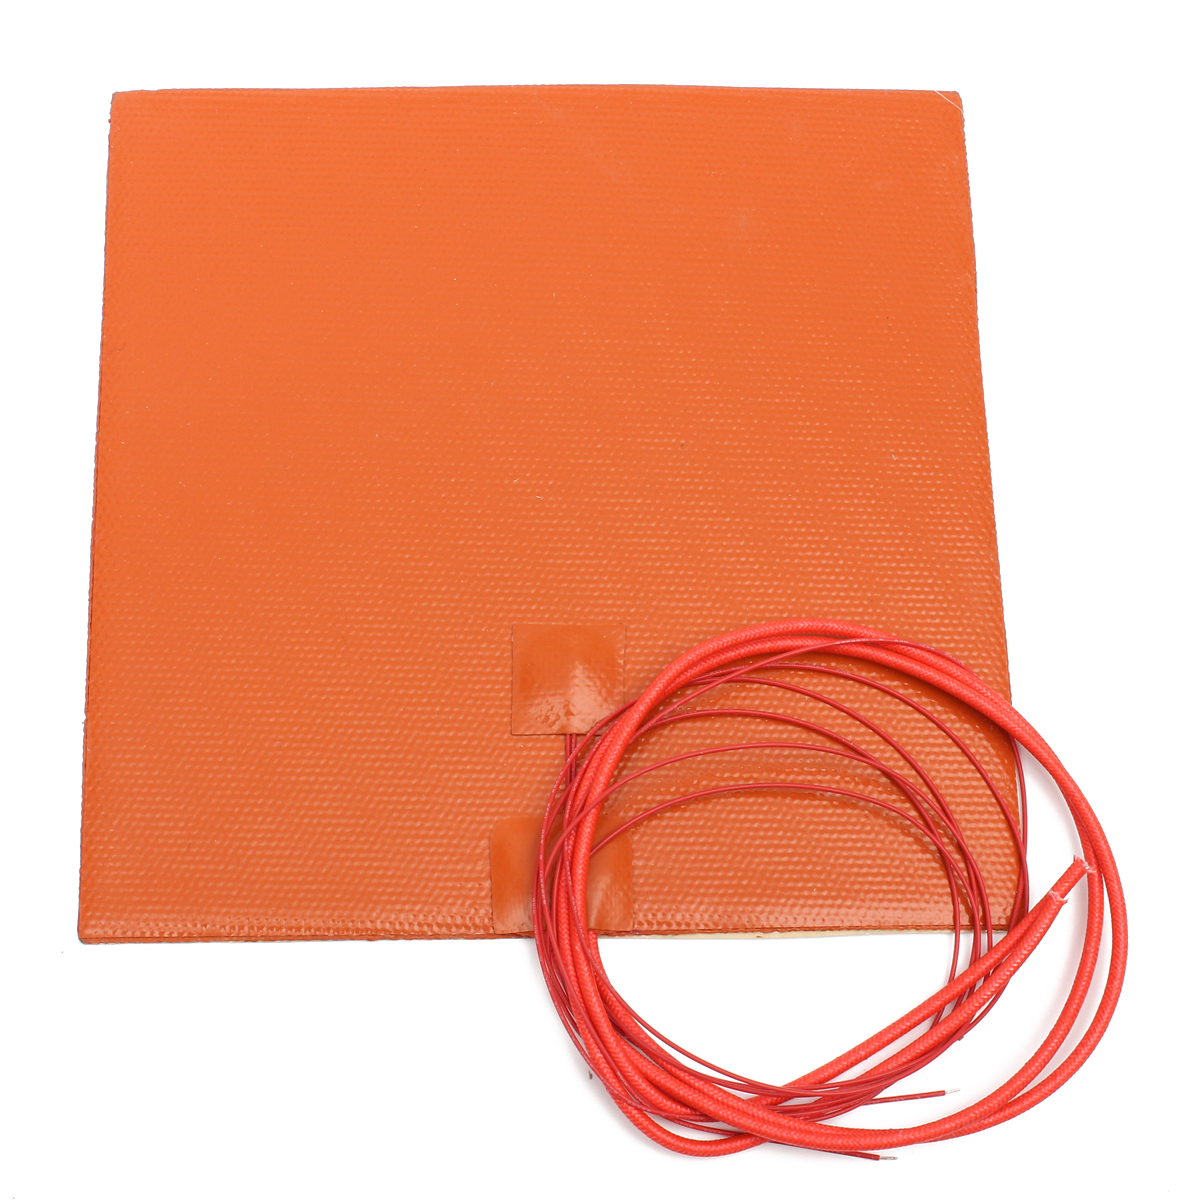 12v 200w 200mmx200mm Waterproof Flexible Silicone Heating